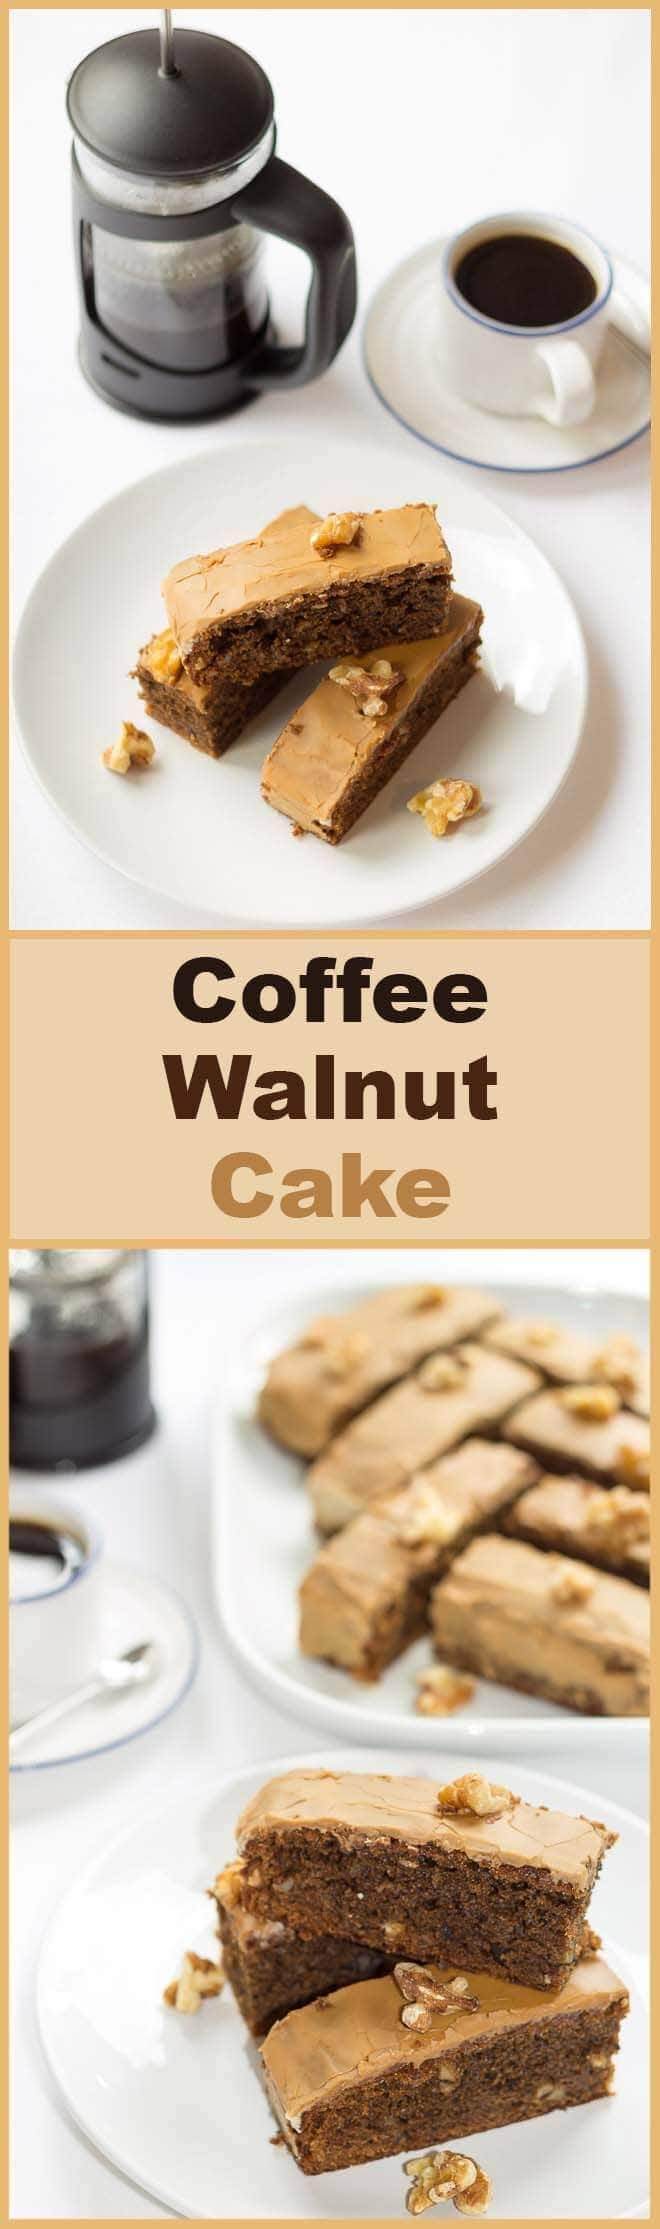 A deliciously moist, nutty textured cake with just a hint of coffee. This coffee walnut cake is loved by coffee lovers and non-coffee lovers alike.